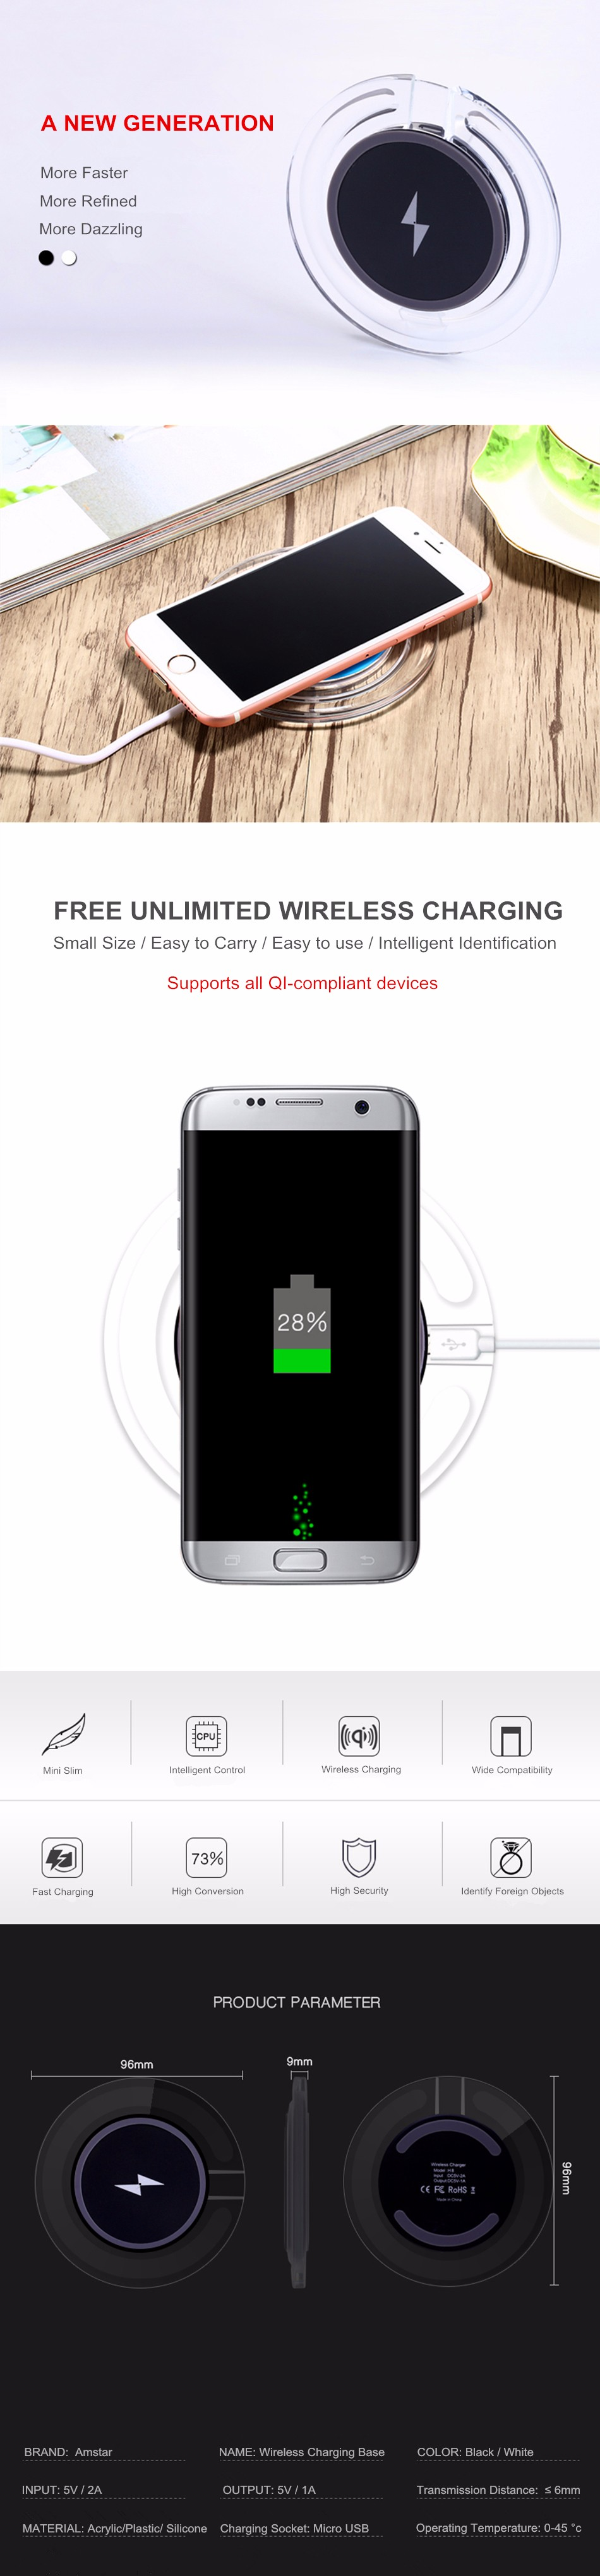 Amstar Wireless Charger Qi Charging Pad For Iphone X 8 Universal Receiver Reveres Port Smartphone Plus 7 6s 6 5s 5c 5